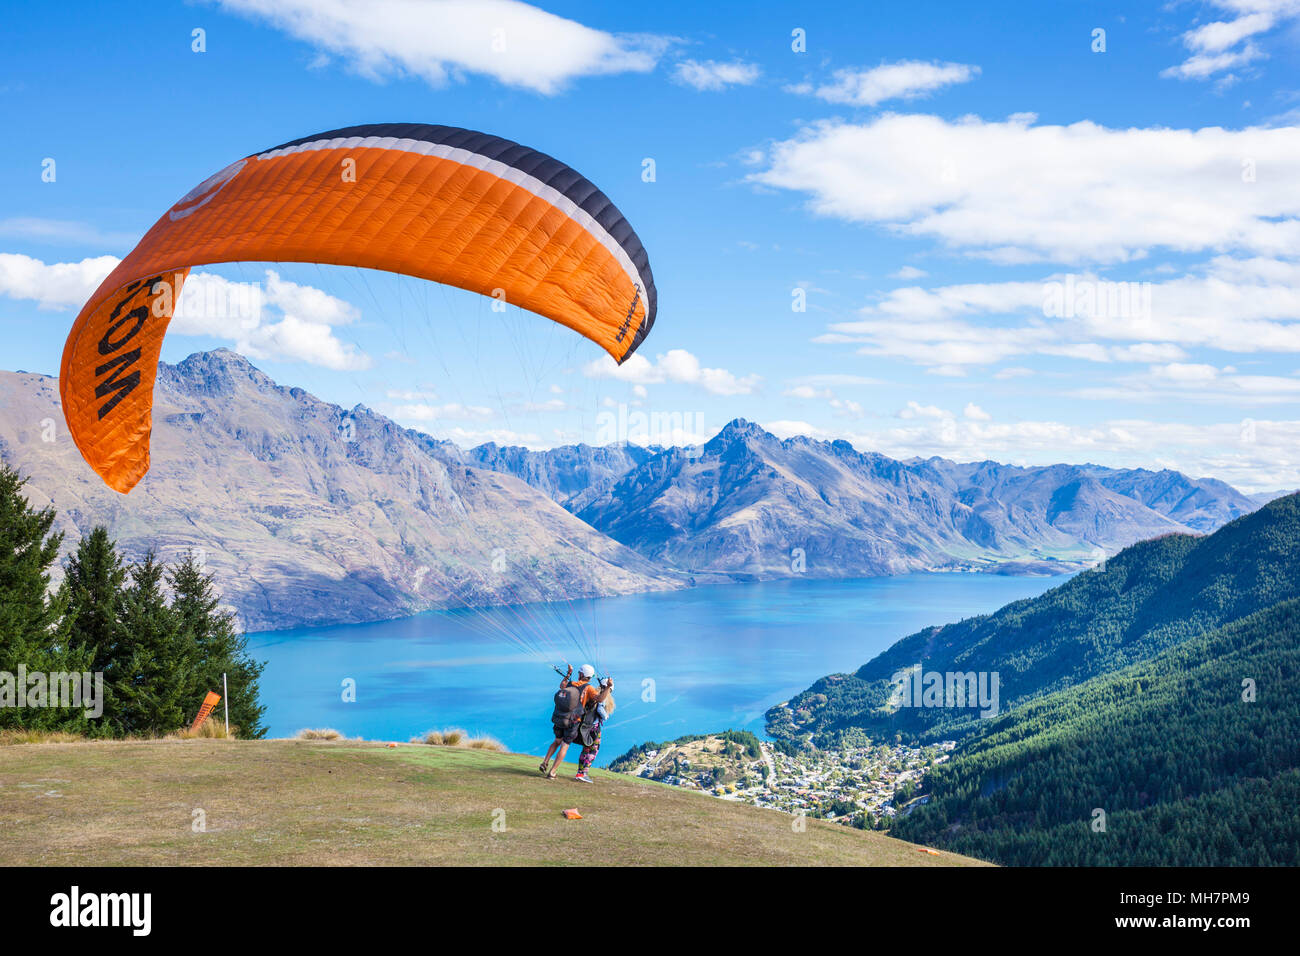 Queenstown South Island new zealand tandem paragliding experience jumping from bob's peak above Lake wakatipu queenstown new zealand south island nz - Stock Image